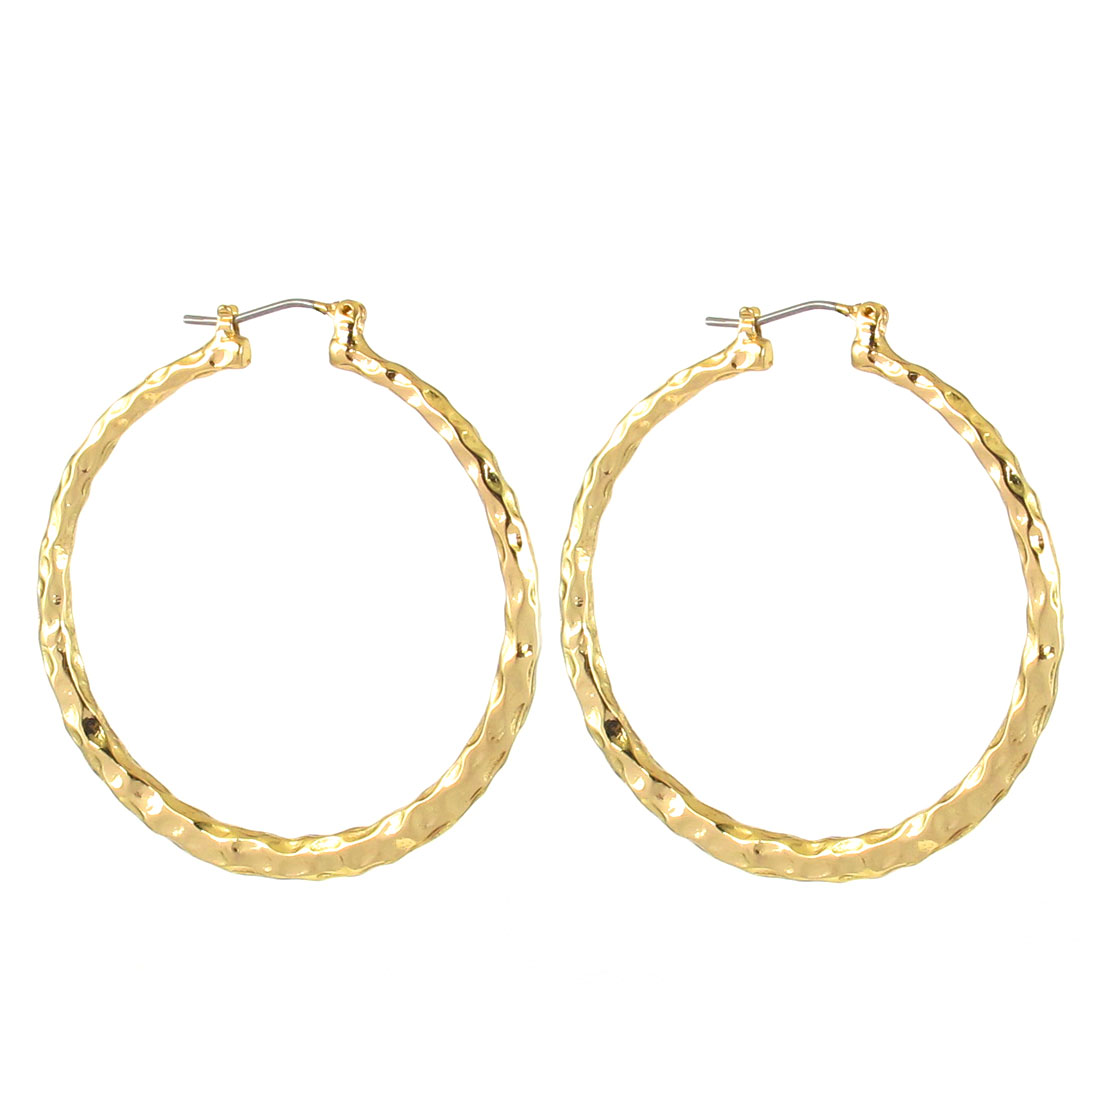 "1.8"" Dia Gold Tone Metal Narrow Edge Textured Circle Hoop Pierced Earrings Pair for Lady Women"